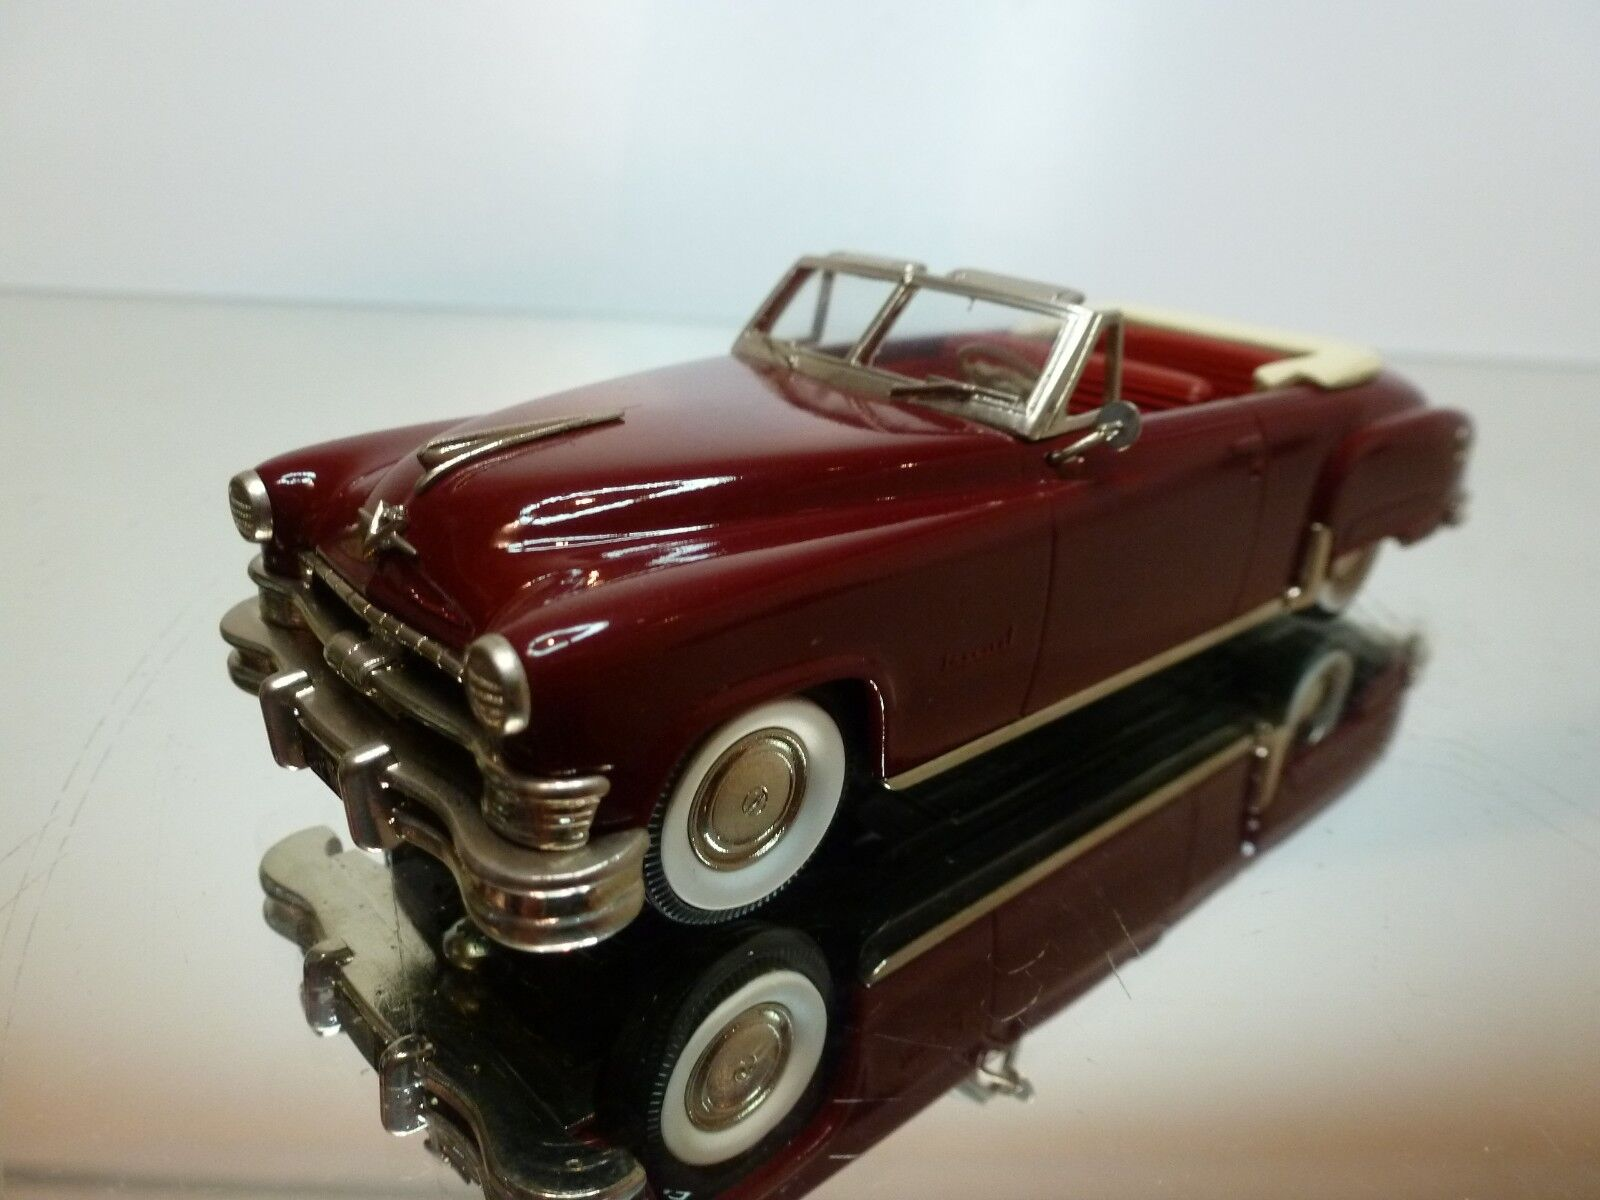 BROOKLIN MODELS CHRYSLER IMPERIAL-CONVERTIBLE 1951 - MAROON 1 43 - EXCELLENT - 6